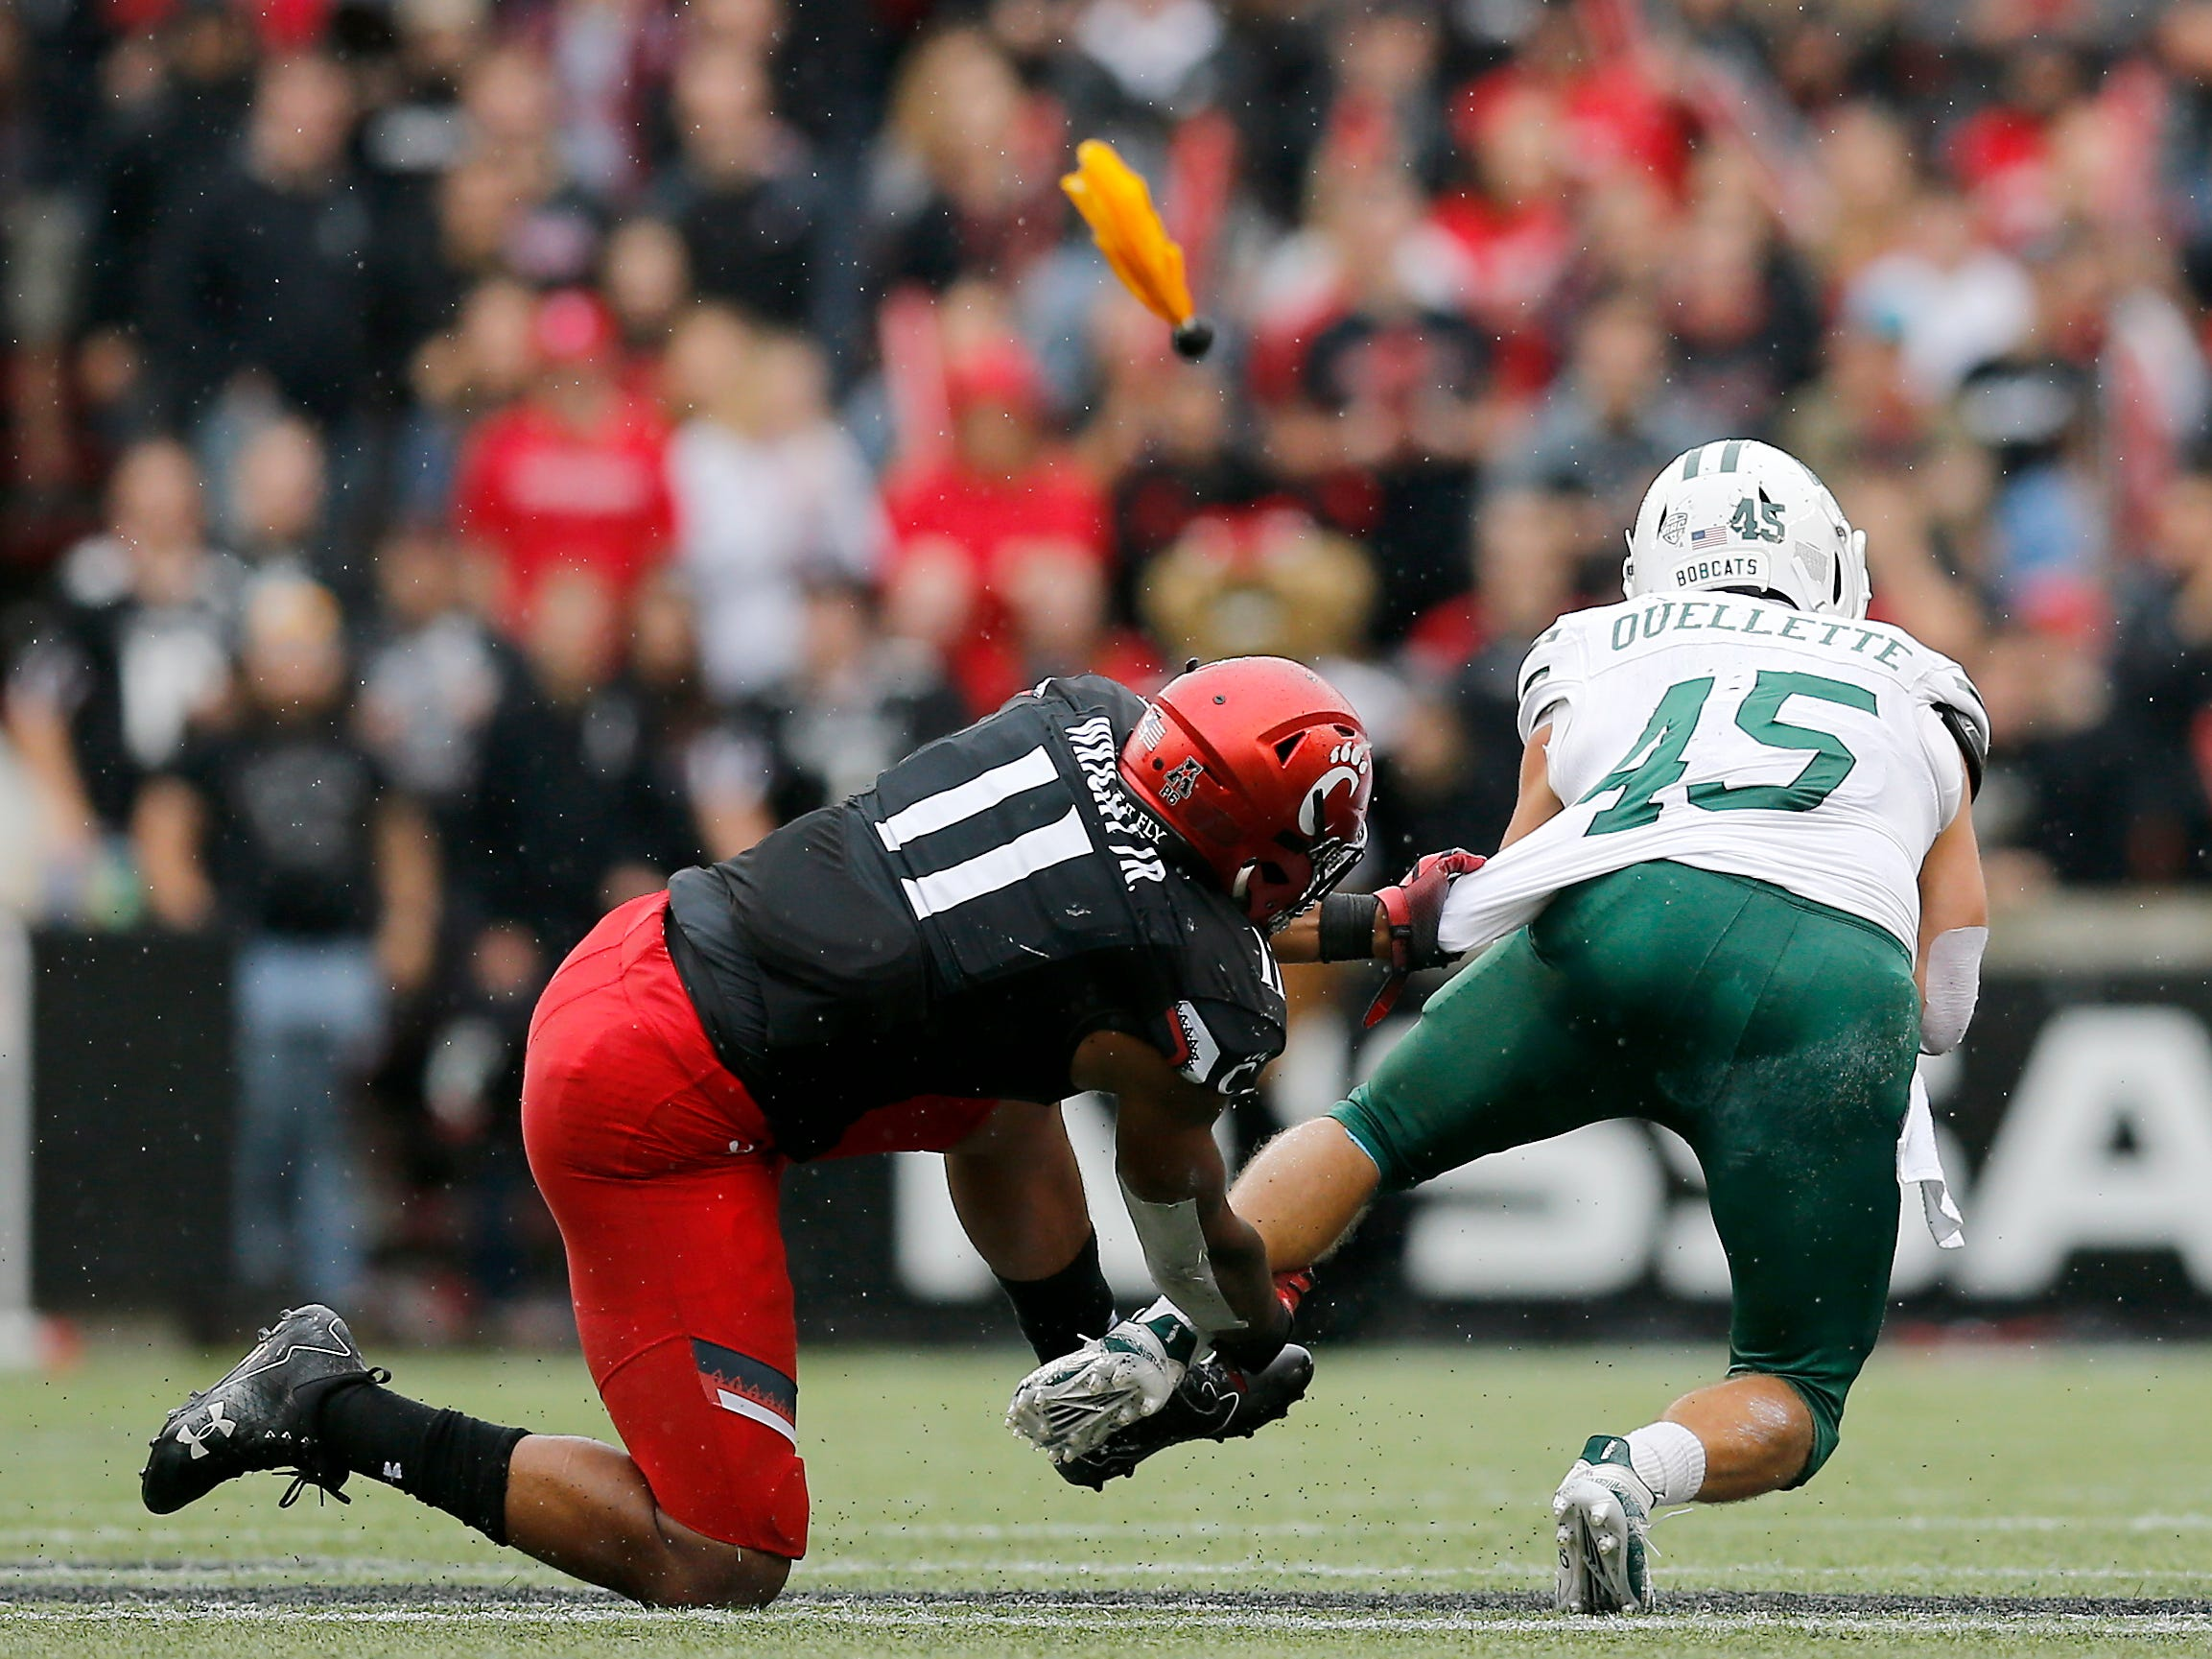 Ohio Bobcats running back A.J. Ouellette (45) is brought down by Cincinnati Bearcats linebacker Bryan Wright (11) as a flag flies in the third quarter of the NCAA football game between the Cincinnati Bearcats and the Ohio Bobcats at Nippert Stadium on the University of Cincinnati campus in Cincinnati on Saturday, Sept. 22, 2018. The Bearcats overcame a 24-7 deficit at halftime to win 34-30, improving to 4-0 on the season.